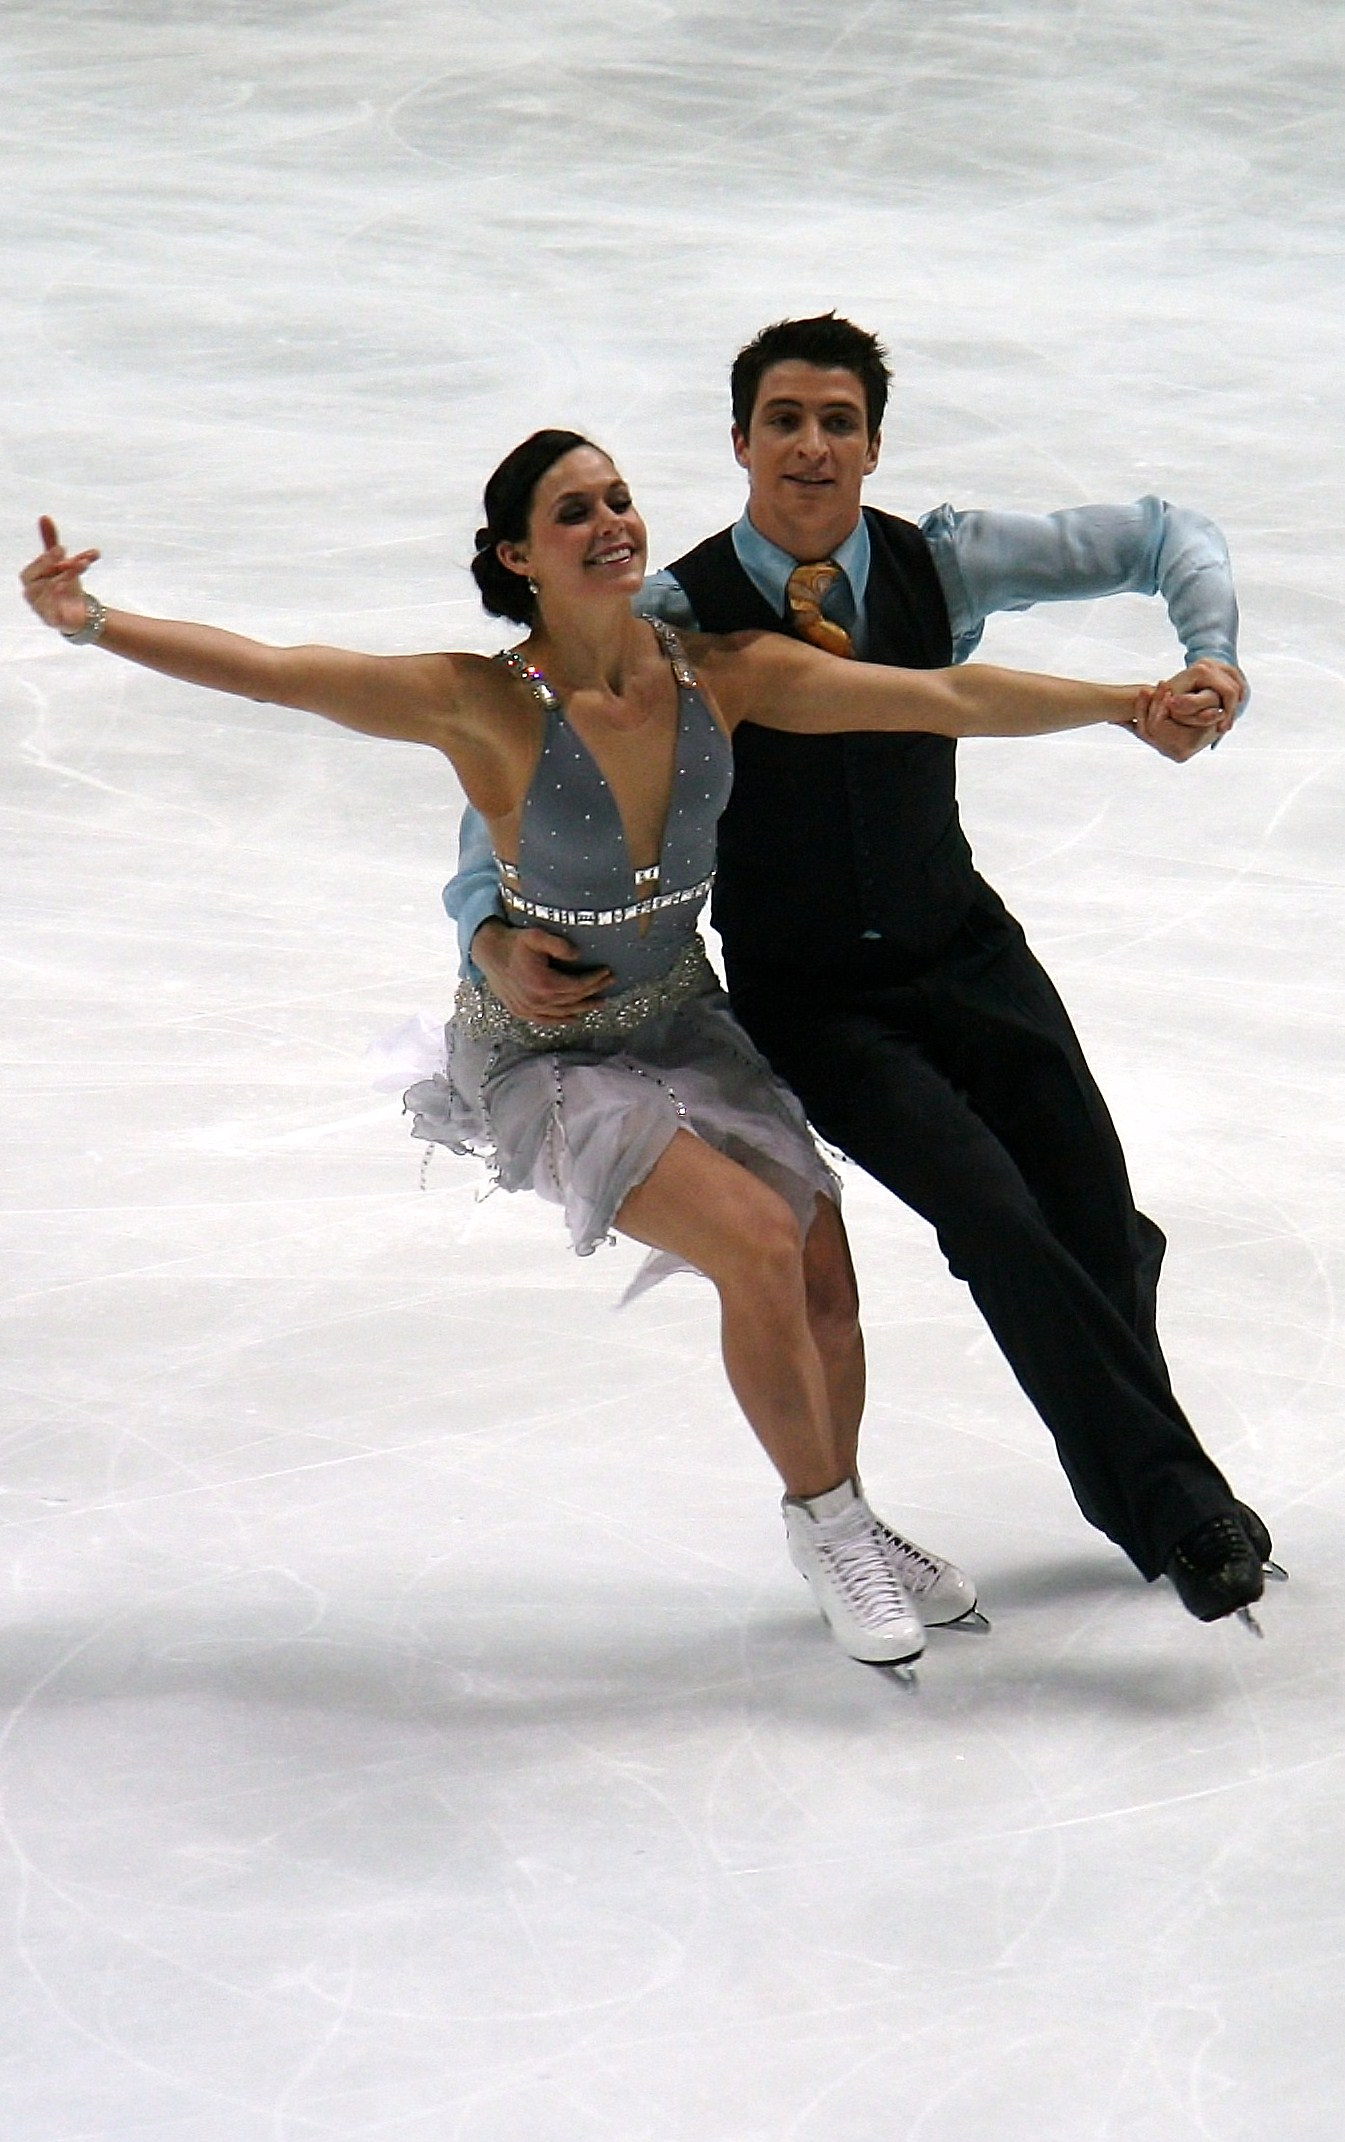 dans Tessa and Scott